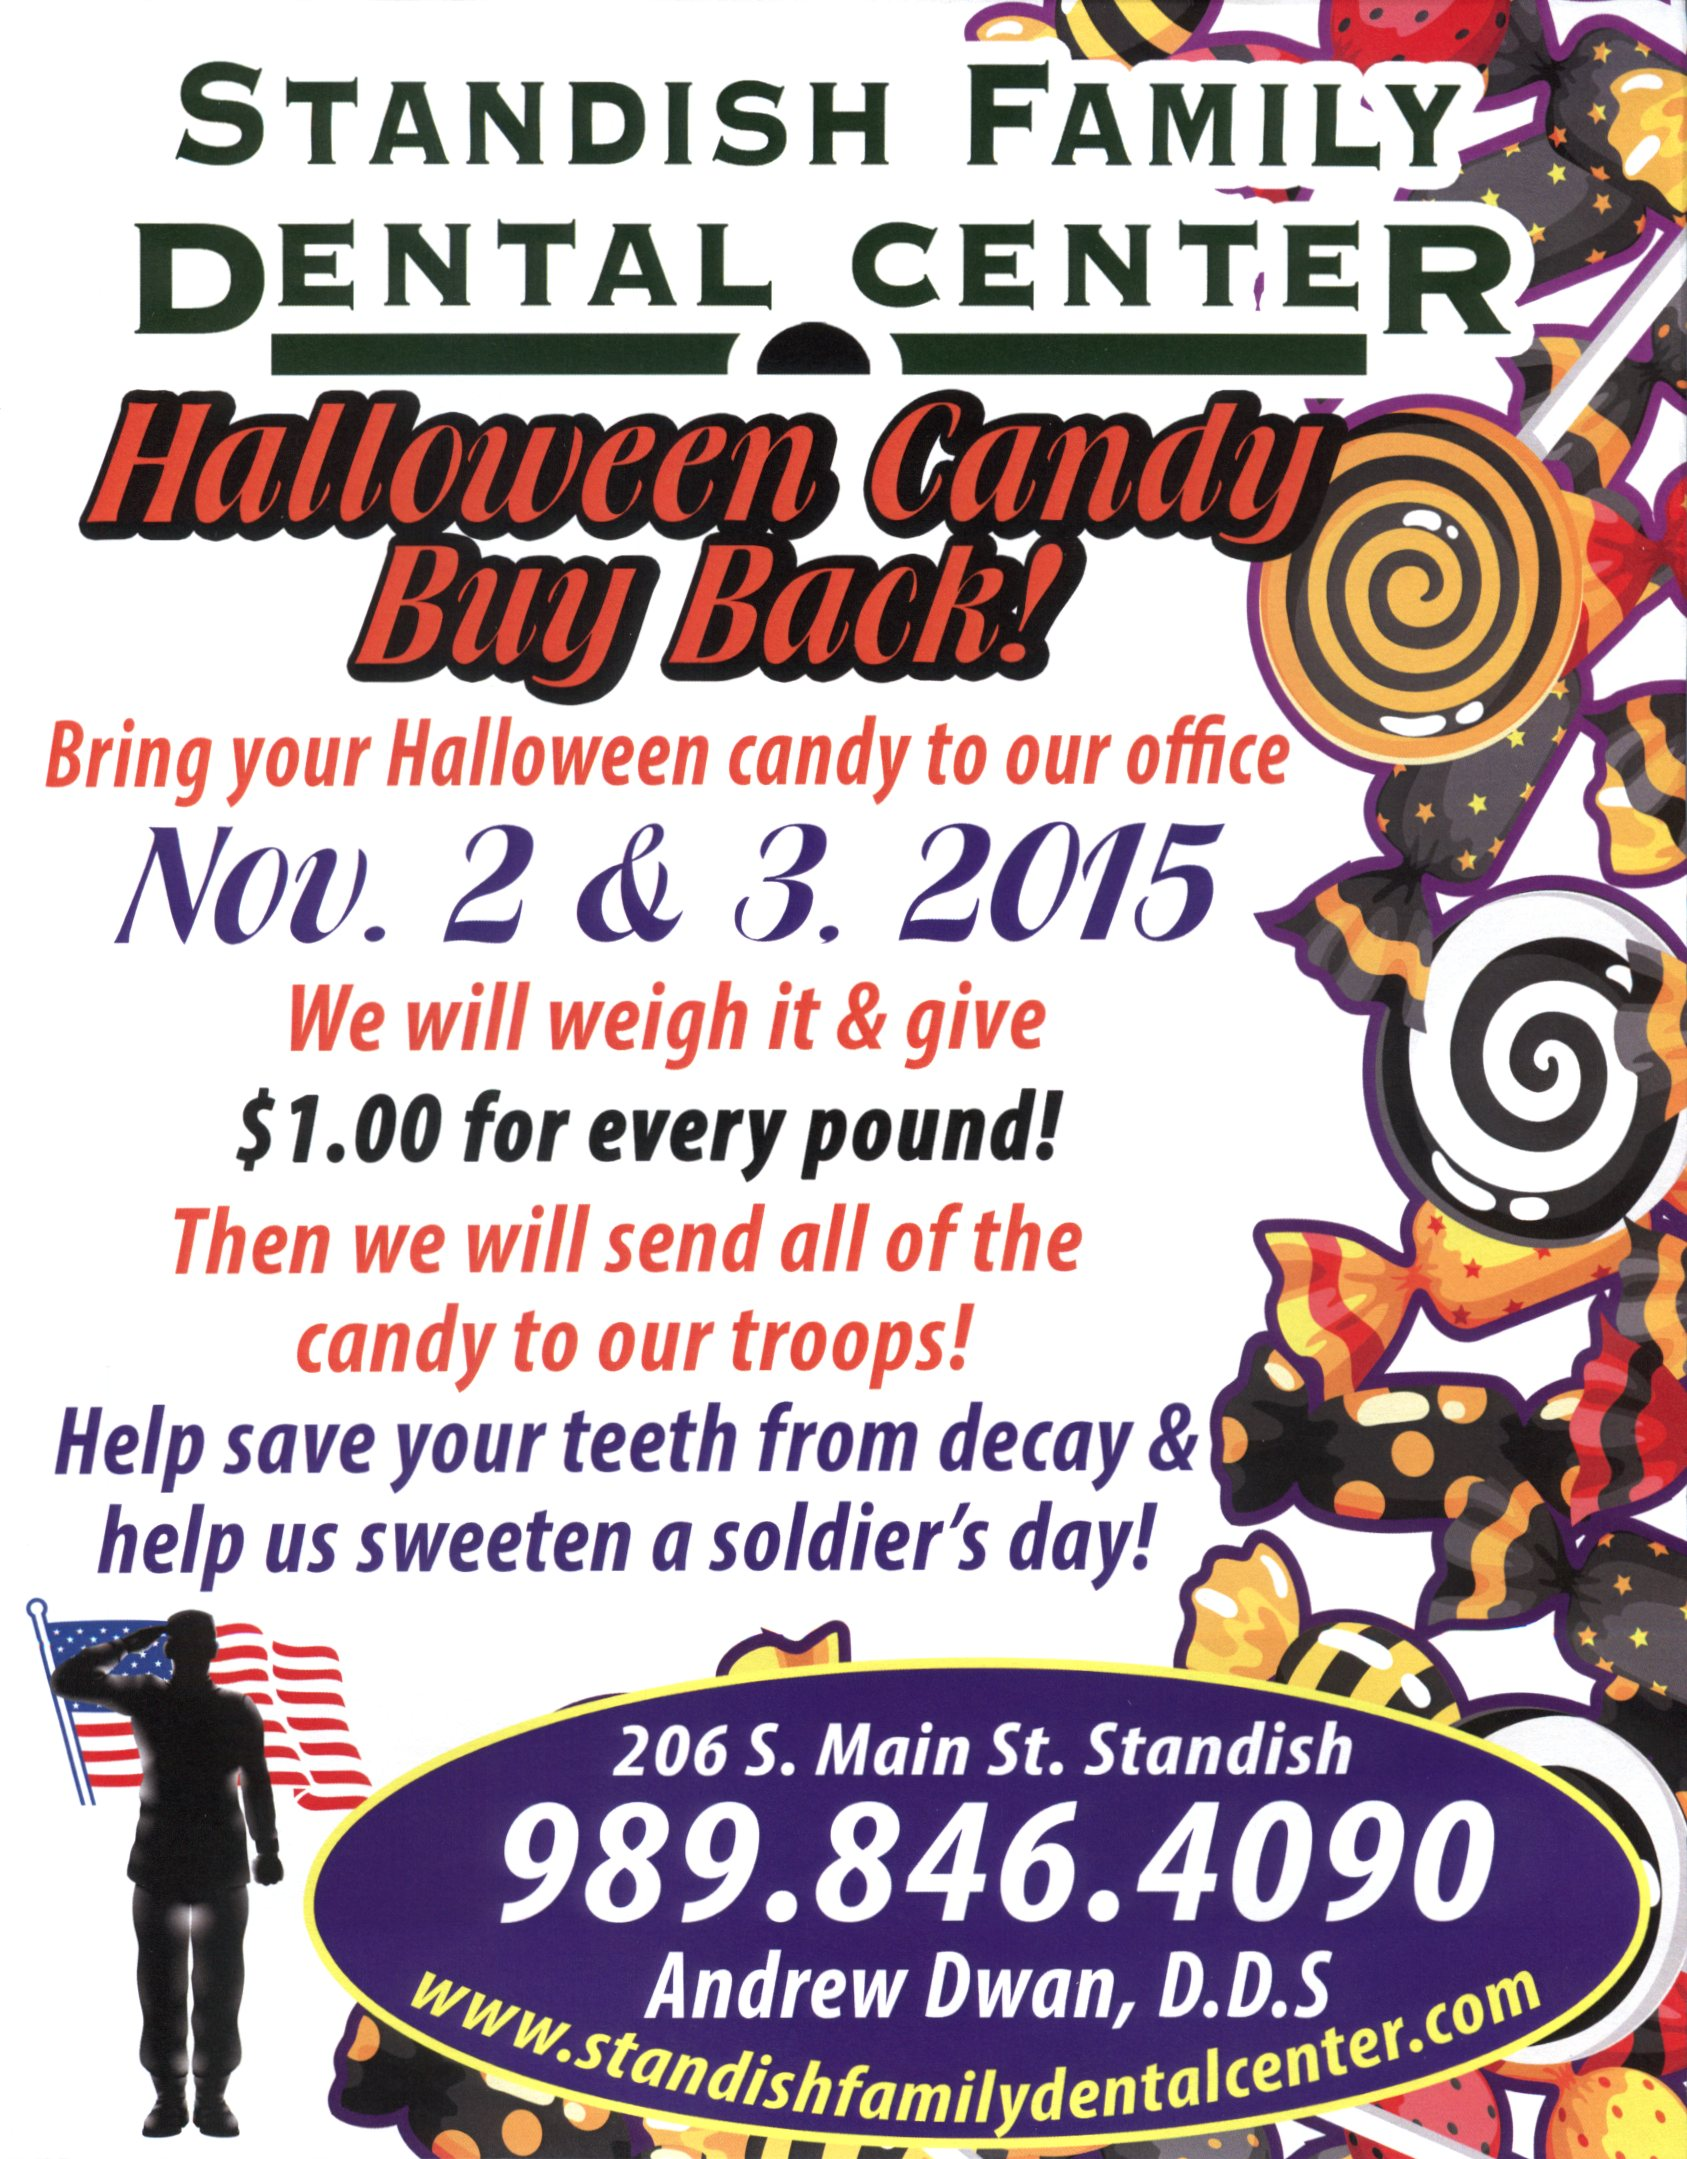 Promote Good Oral Health Last Year We Collected Over 80 Lbs Of Candy  That Was Then Sent Overseas To The Troops Help Us Beat Last Years  Donations!